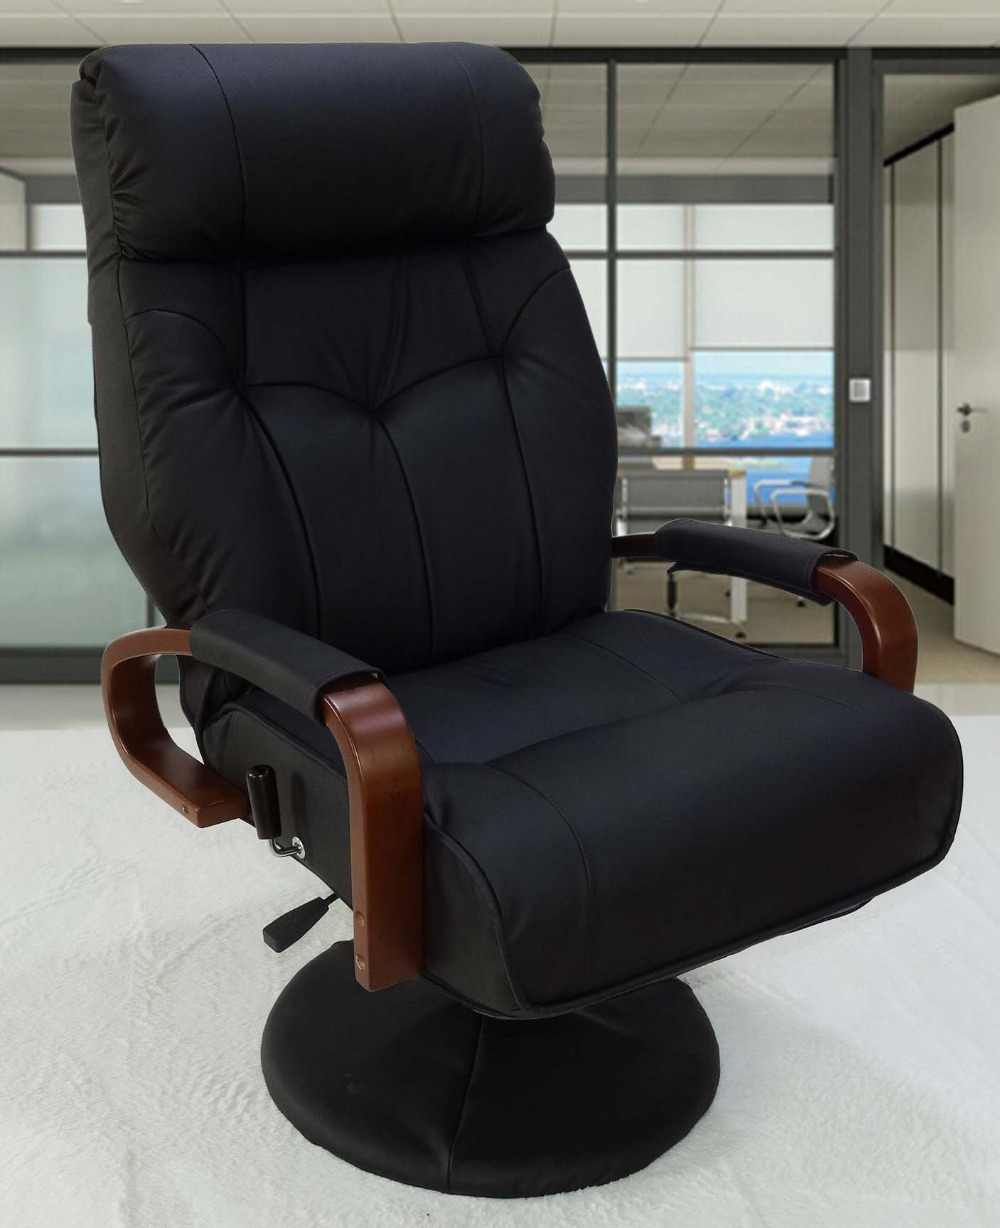 Living room sofa armchair 360 swivel lift chair recliners for elderly modern multifunctional foldable home office